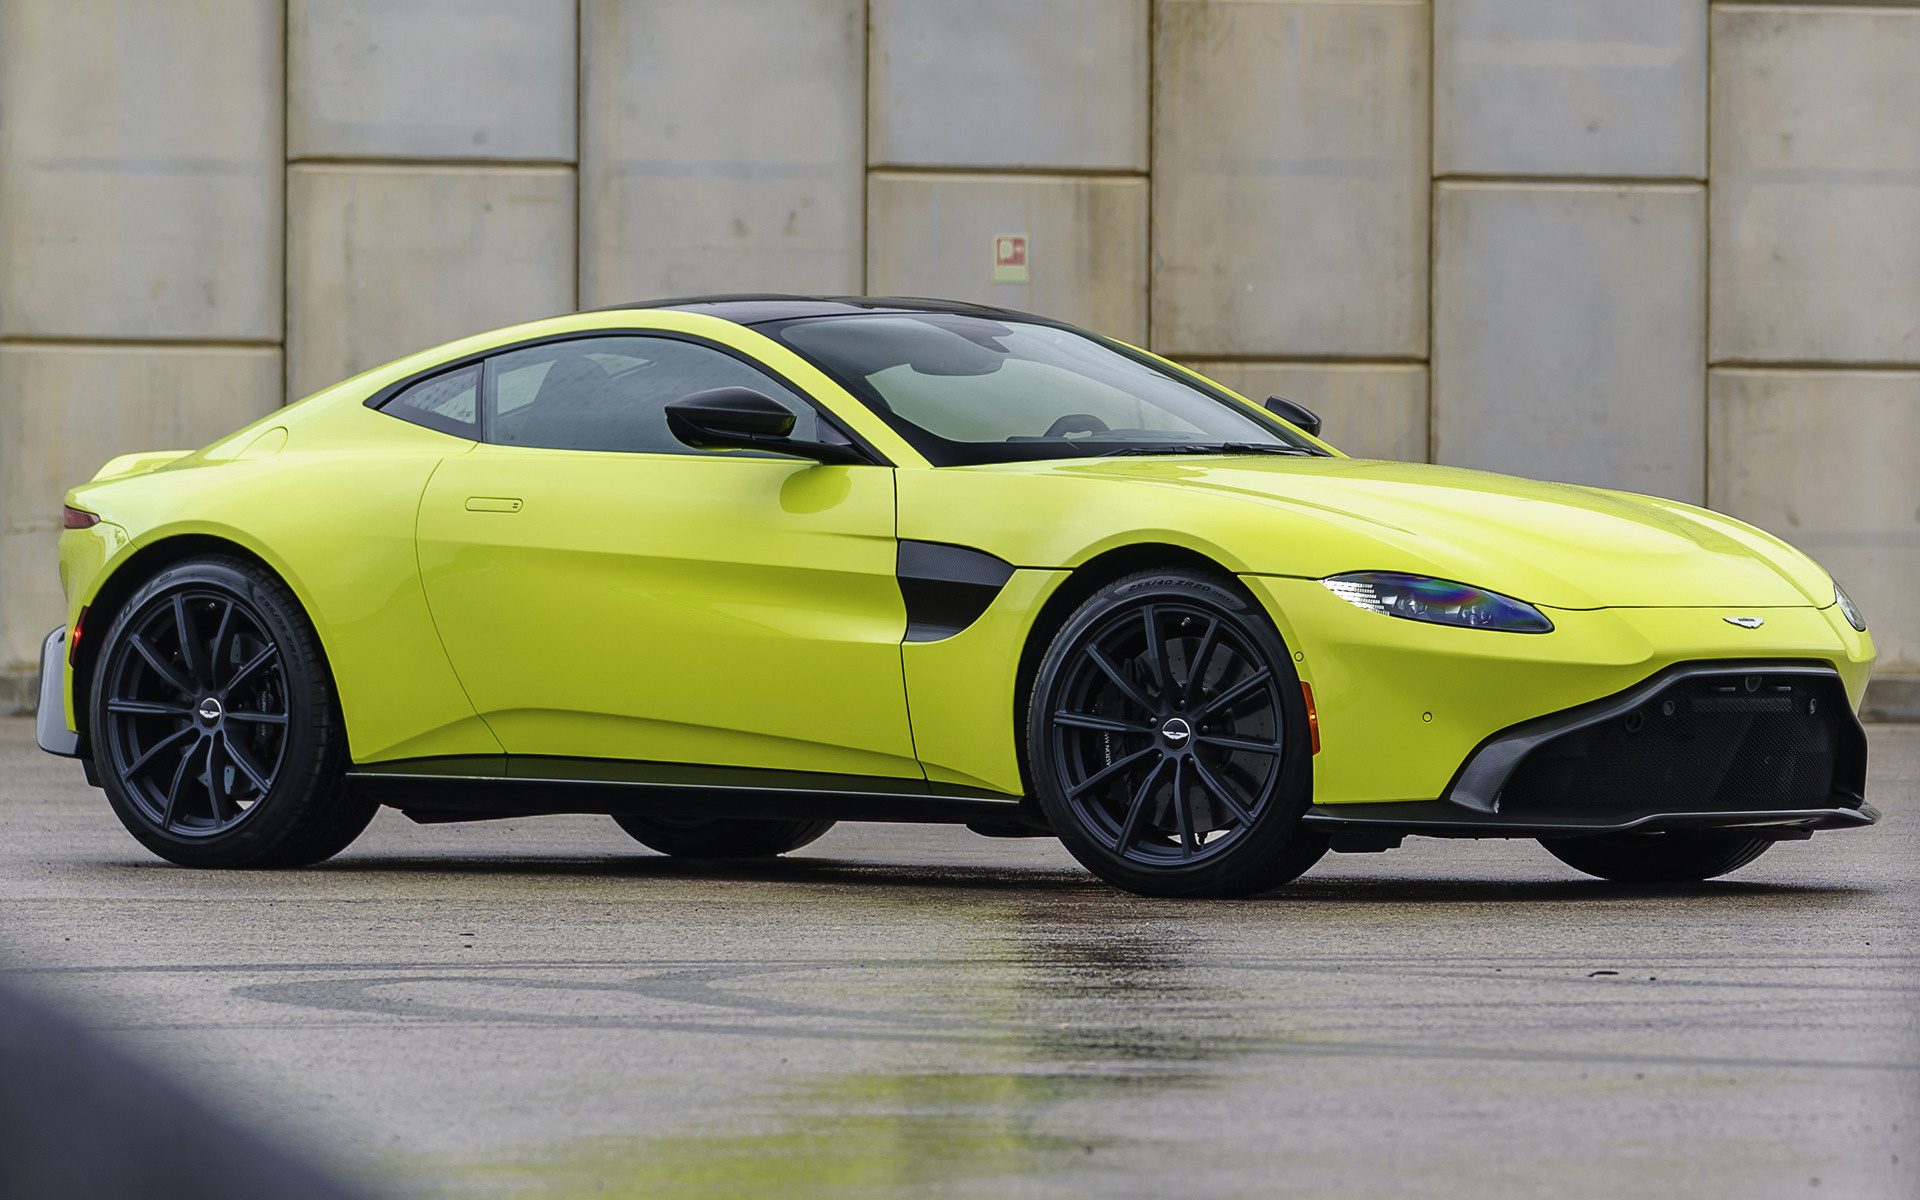 2019 Aston Martin Vantage US   Wallpapers and HD Images Car Pixel 1920x1200